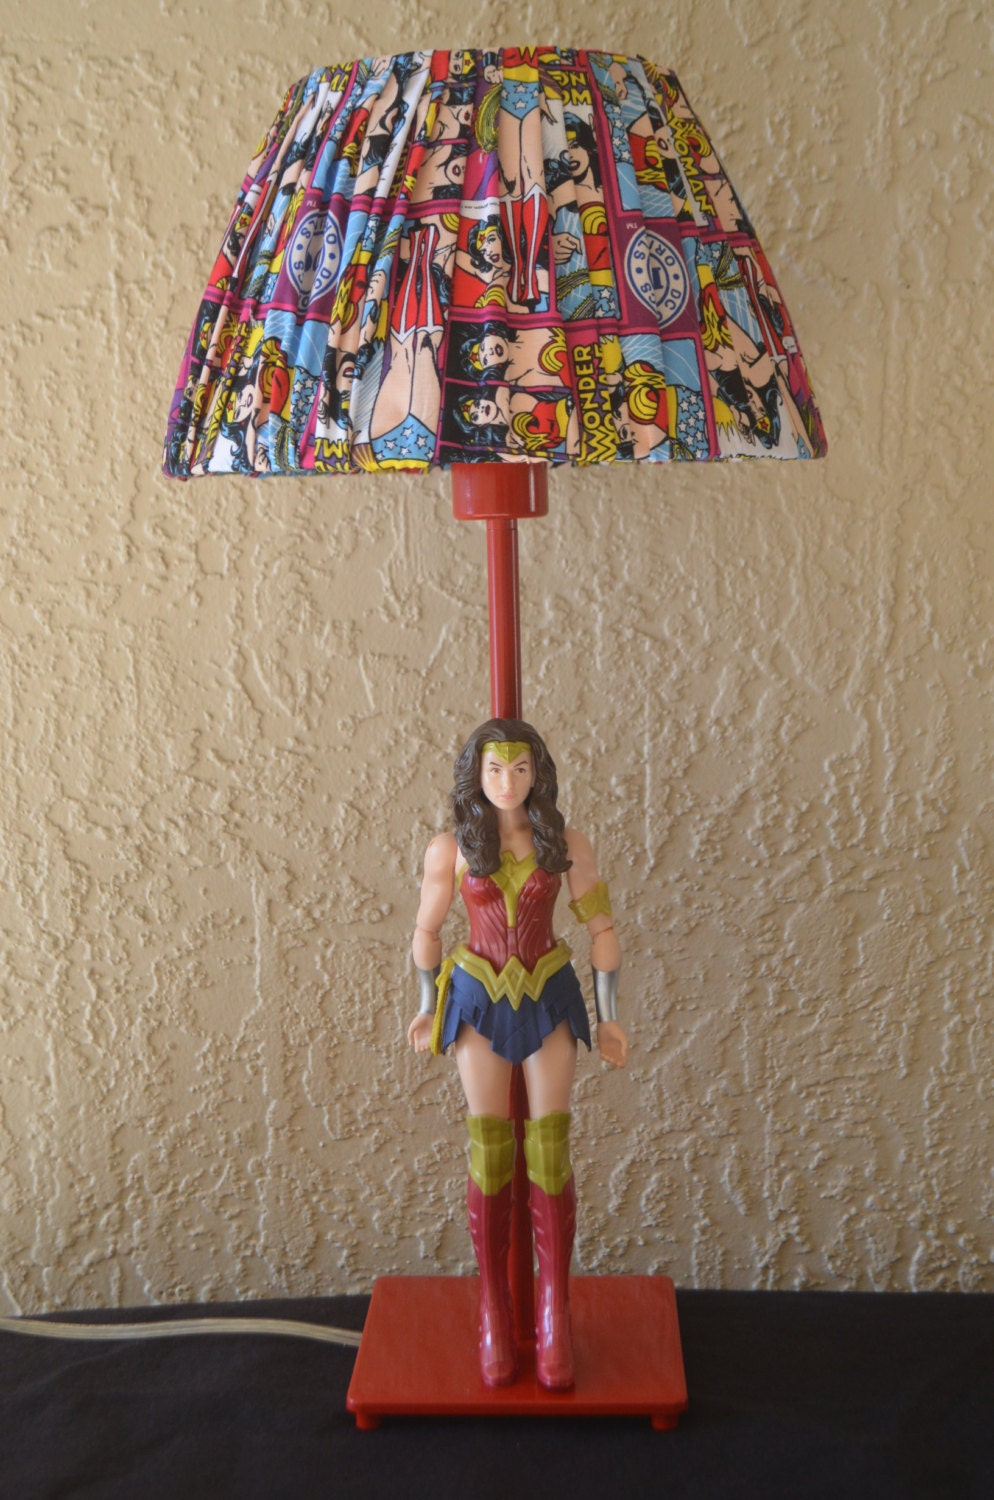 Wonder Woman Lamp By SketchesBySherri On Etsy